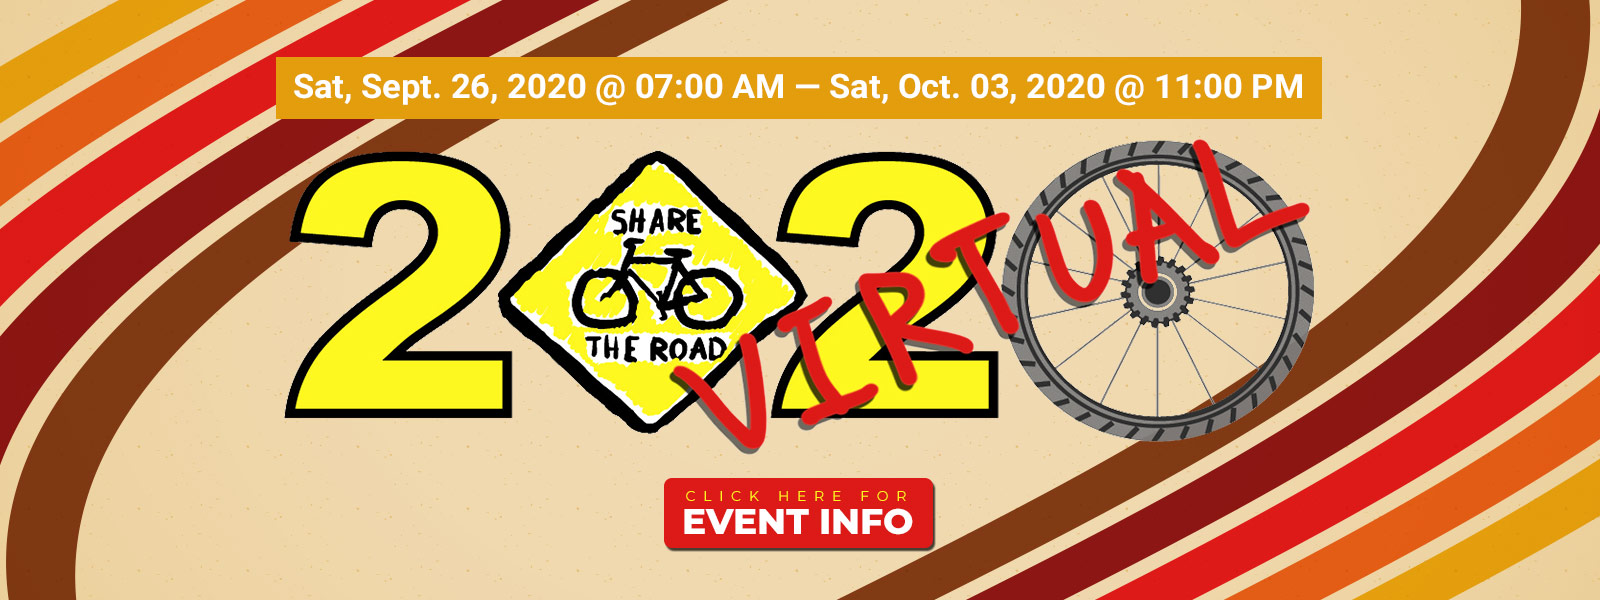 Share the Road Ride 2020